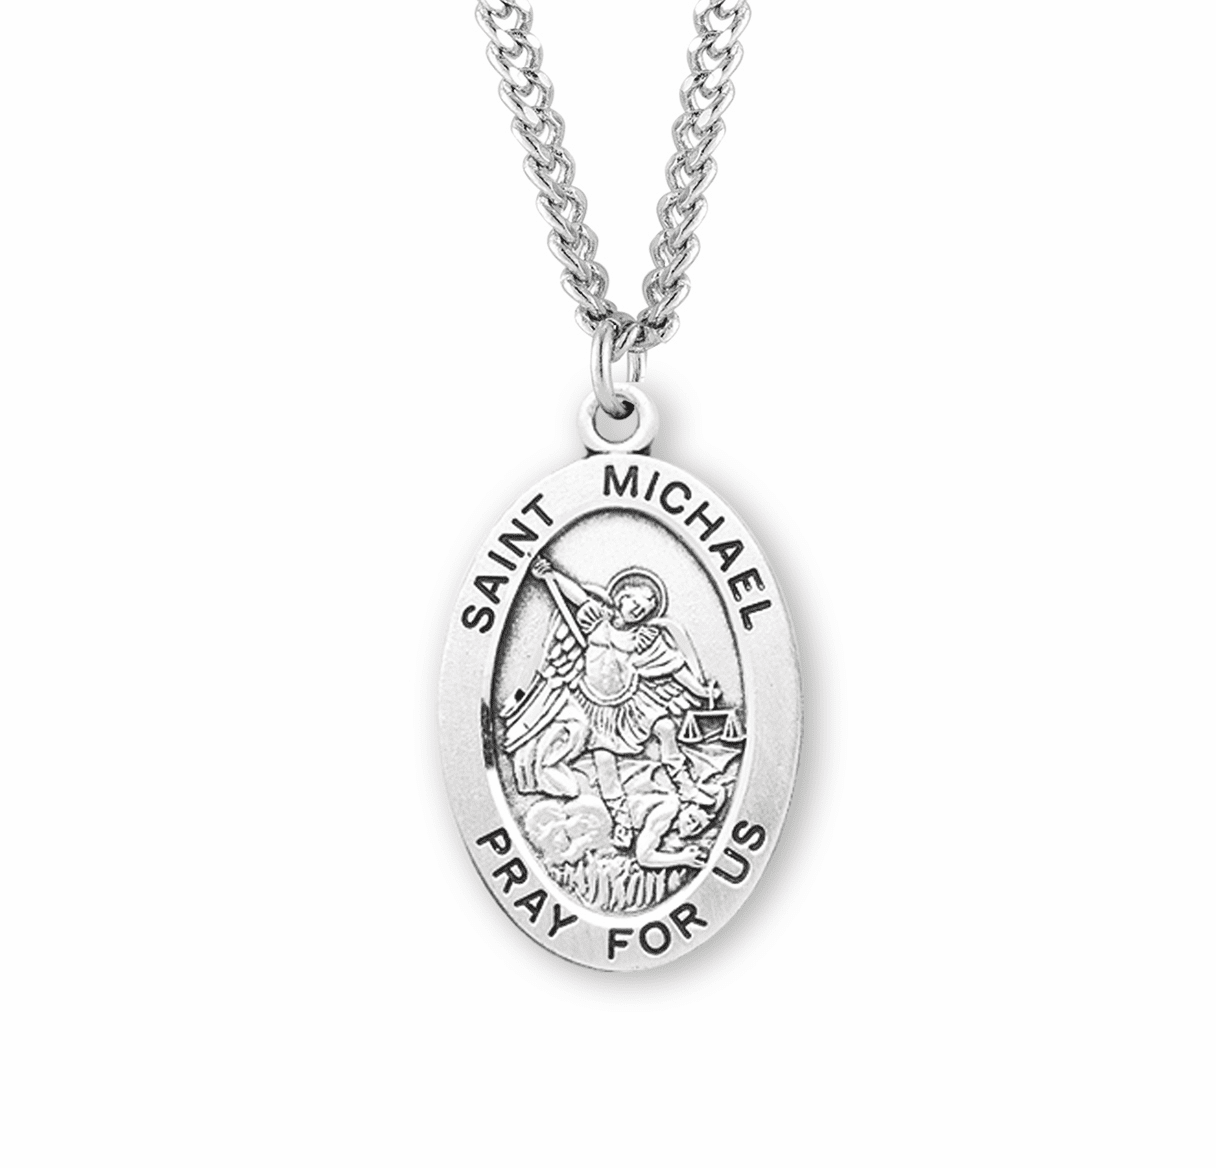 St Michael Large Oval Sterling Silver Saint Medals by HMH Religious